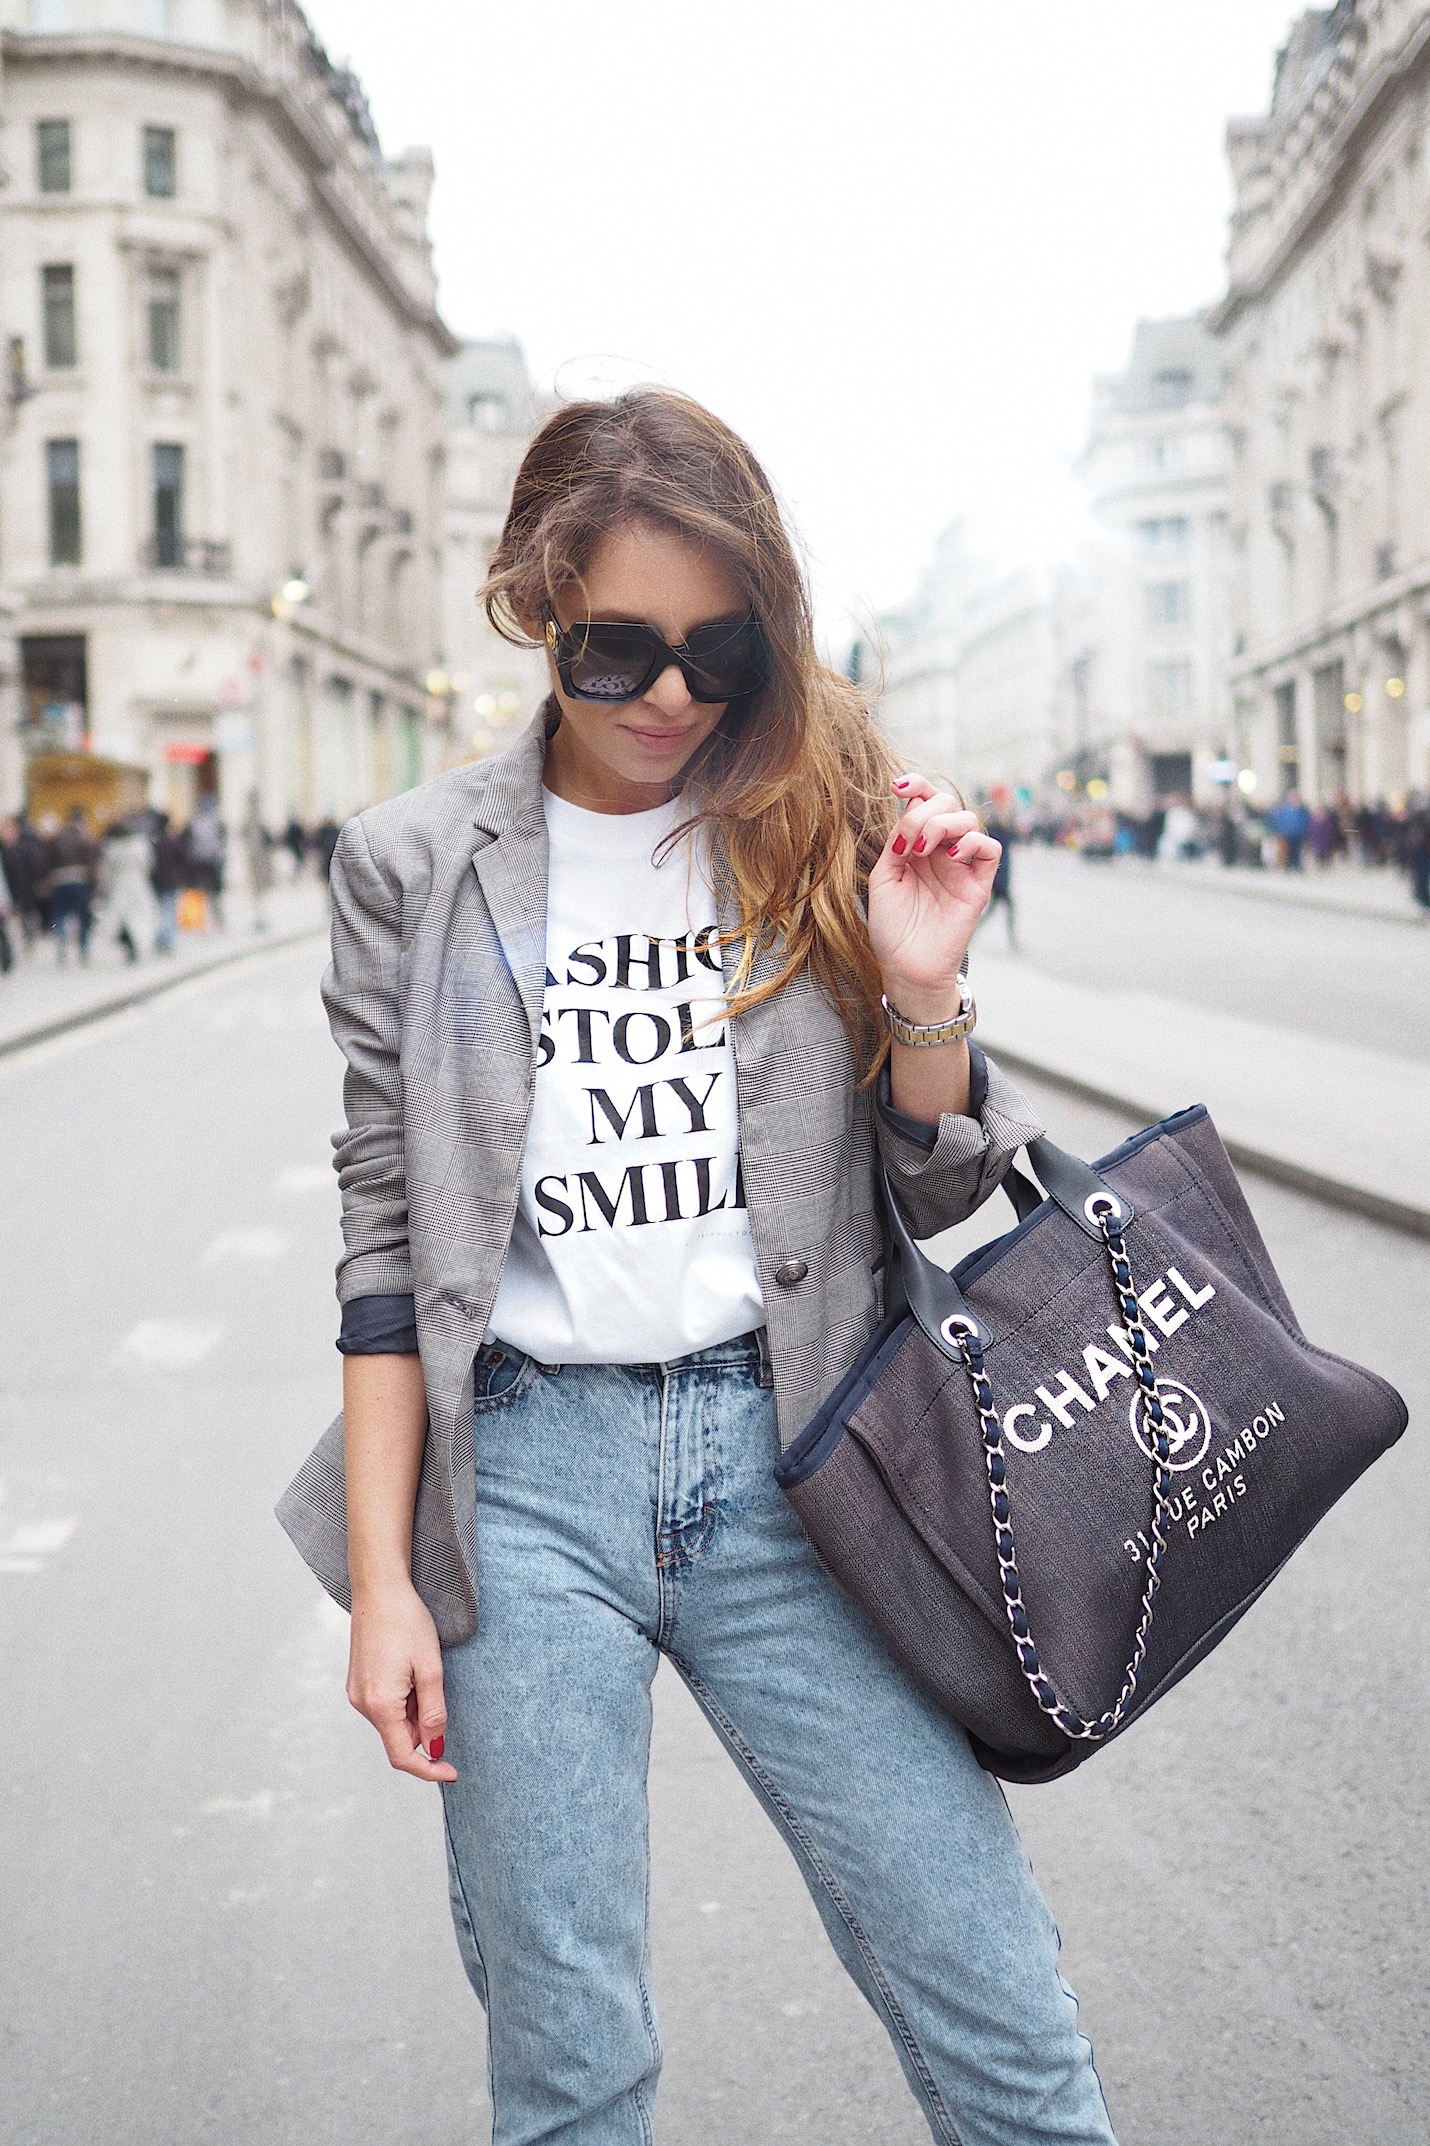 Chanel tote bag street style london fashion bloggers fashion stole my smile VB t-shirt